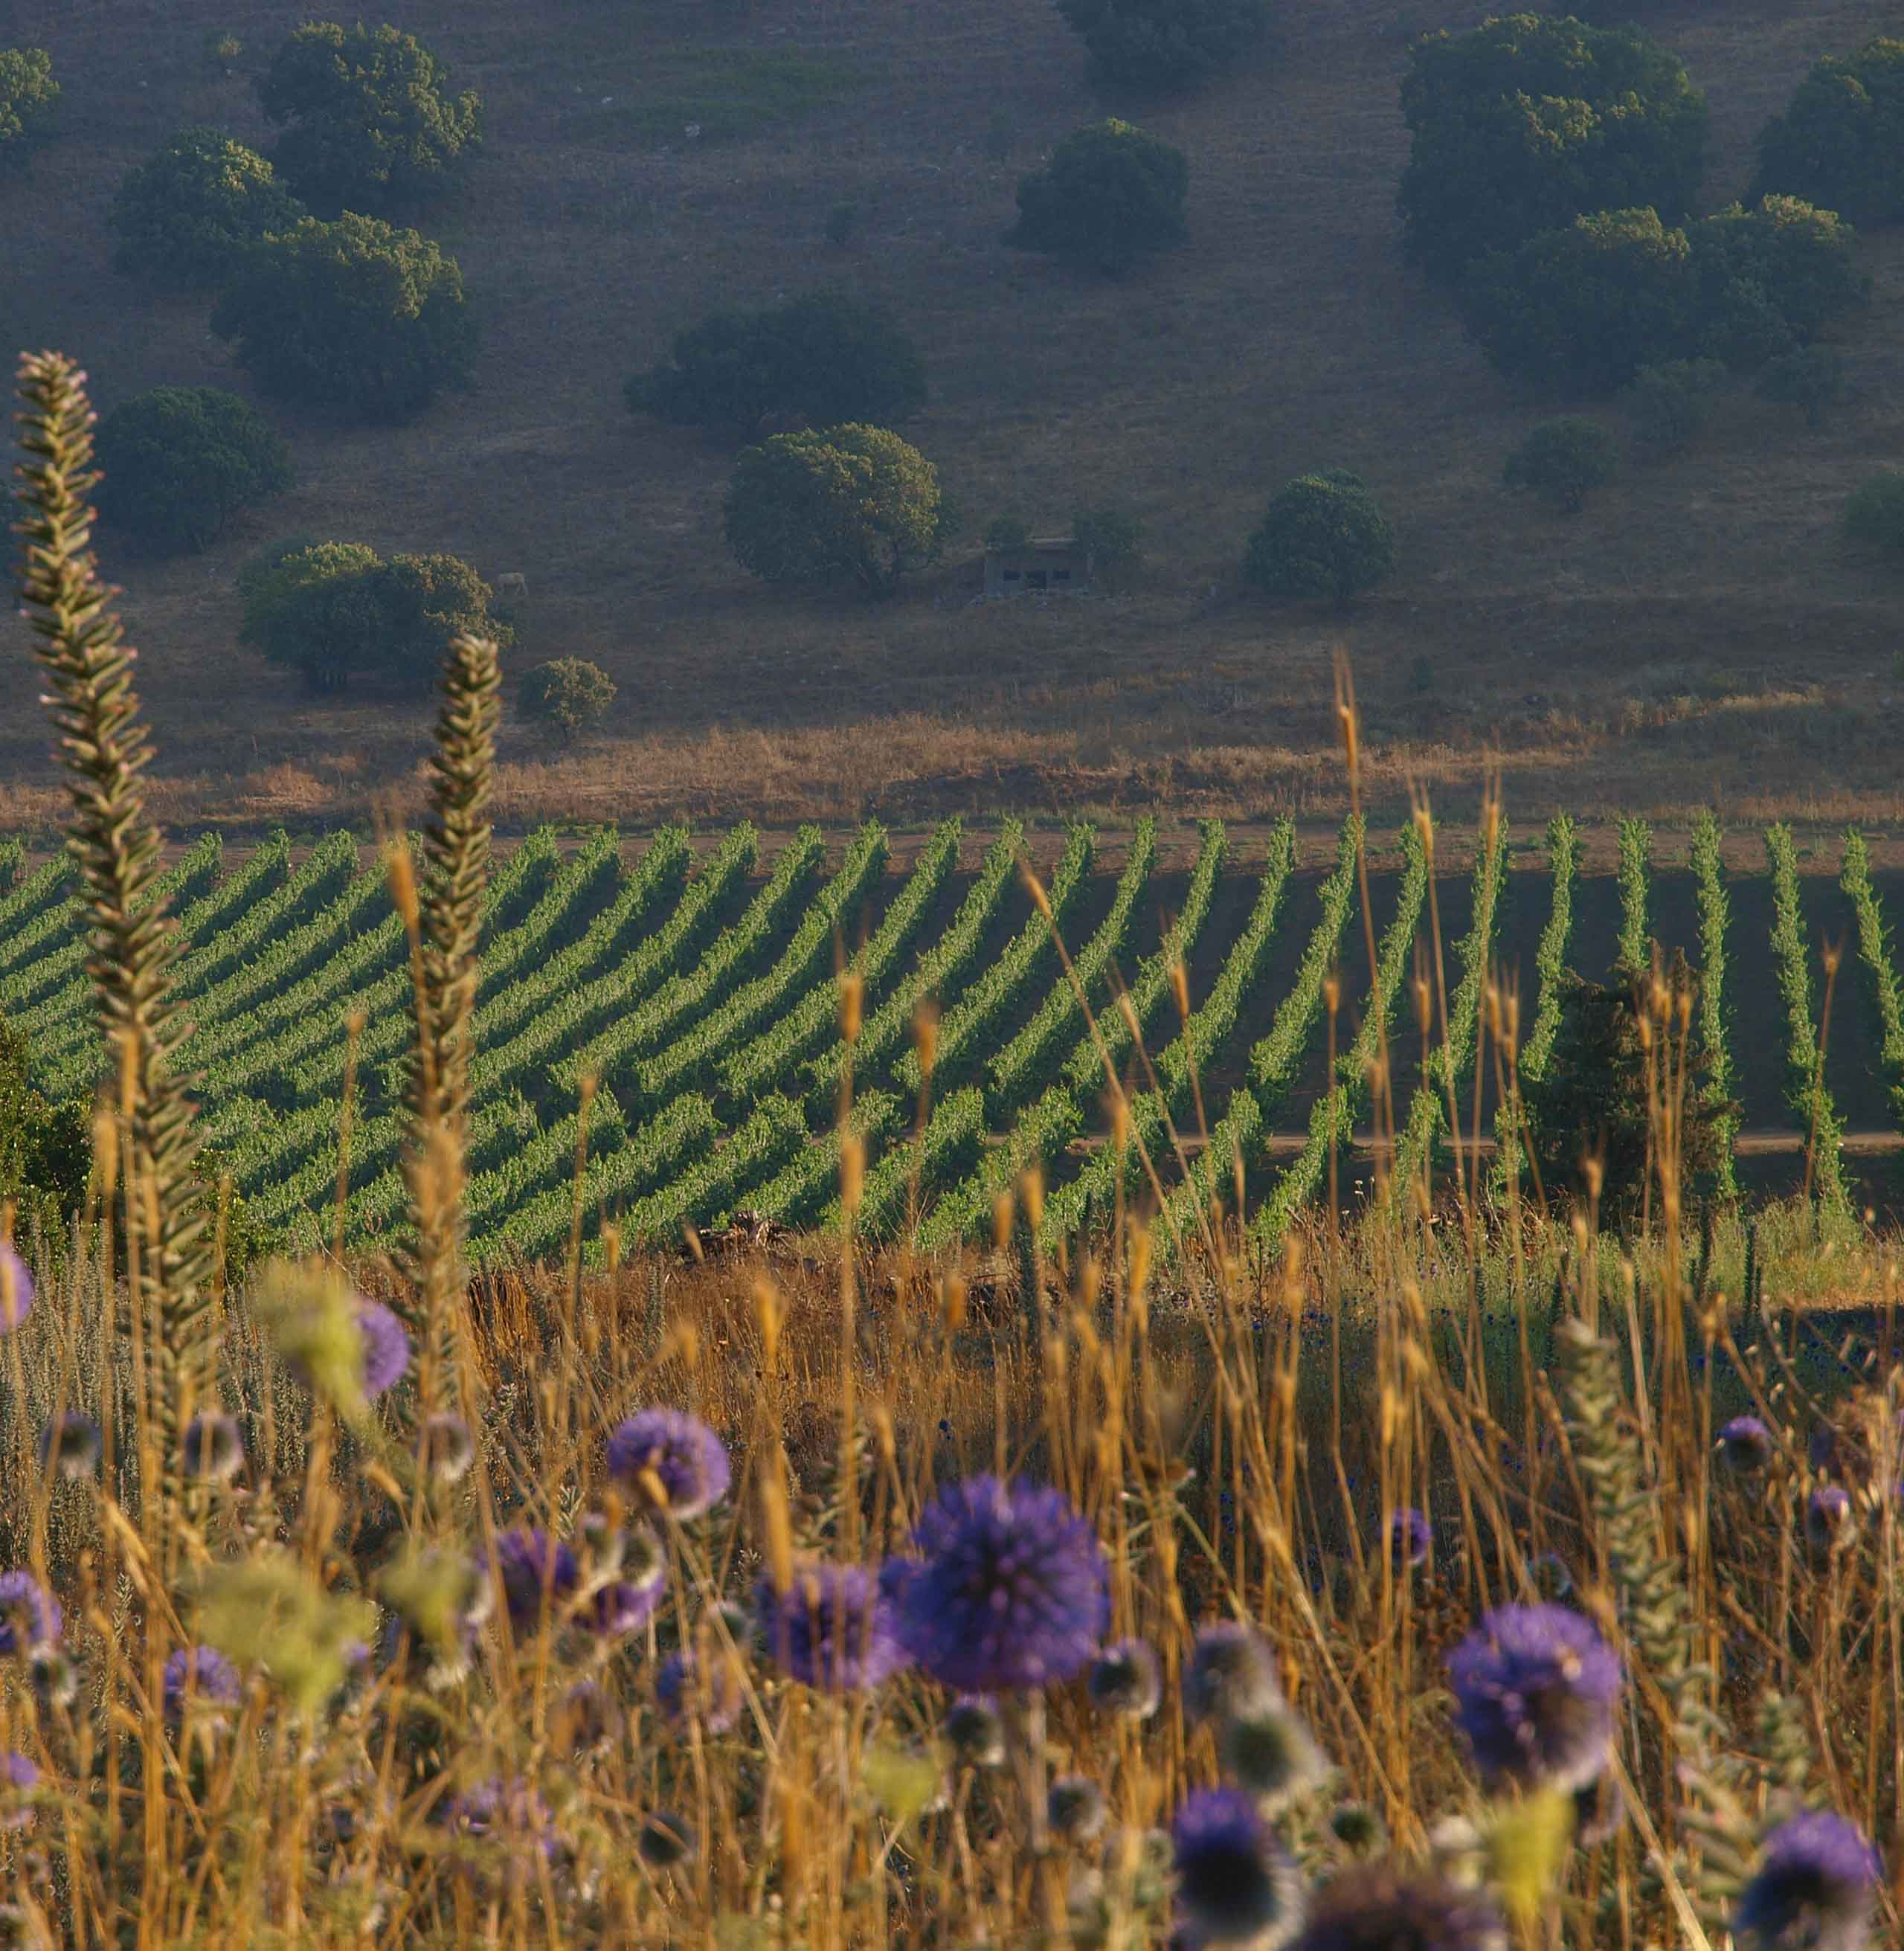 Israeli Wines - Side view of vineyard